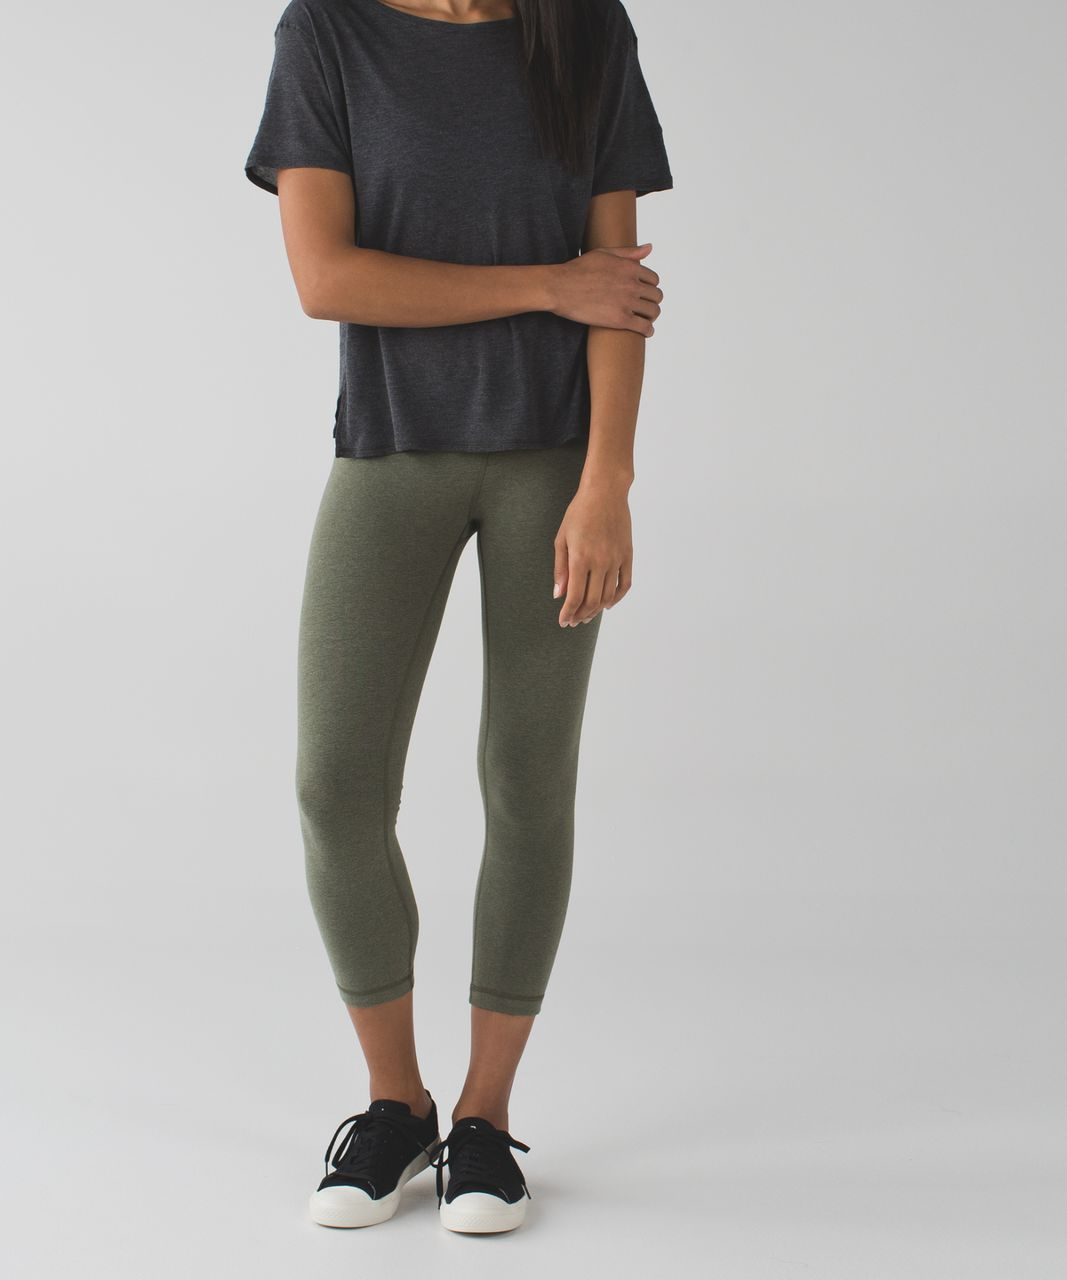 Lululemon Wunder Under Crop III *Cotton - Heathered Fatigue Green